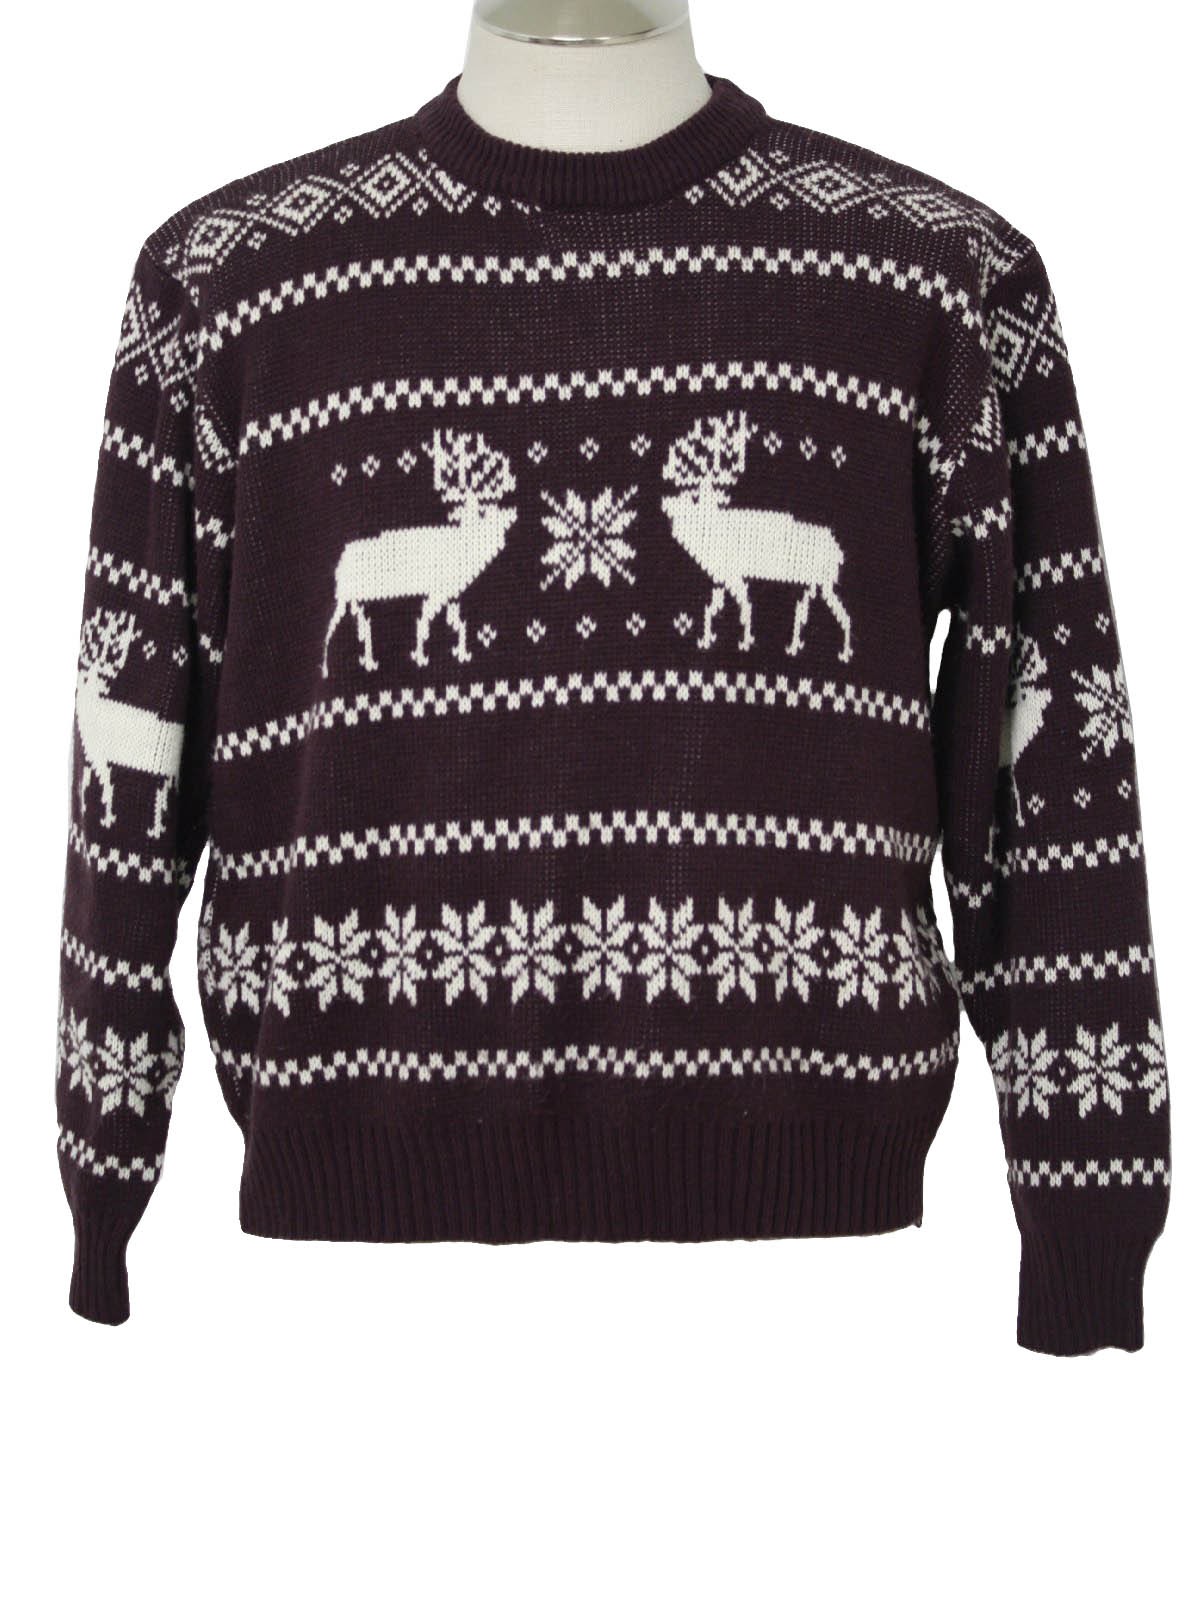 1980's Mens Christmas Ski Sweater: 80s Authentic vintage -The Mens ...